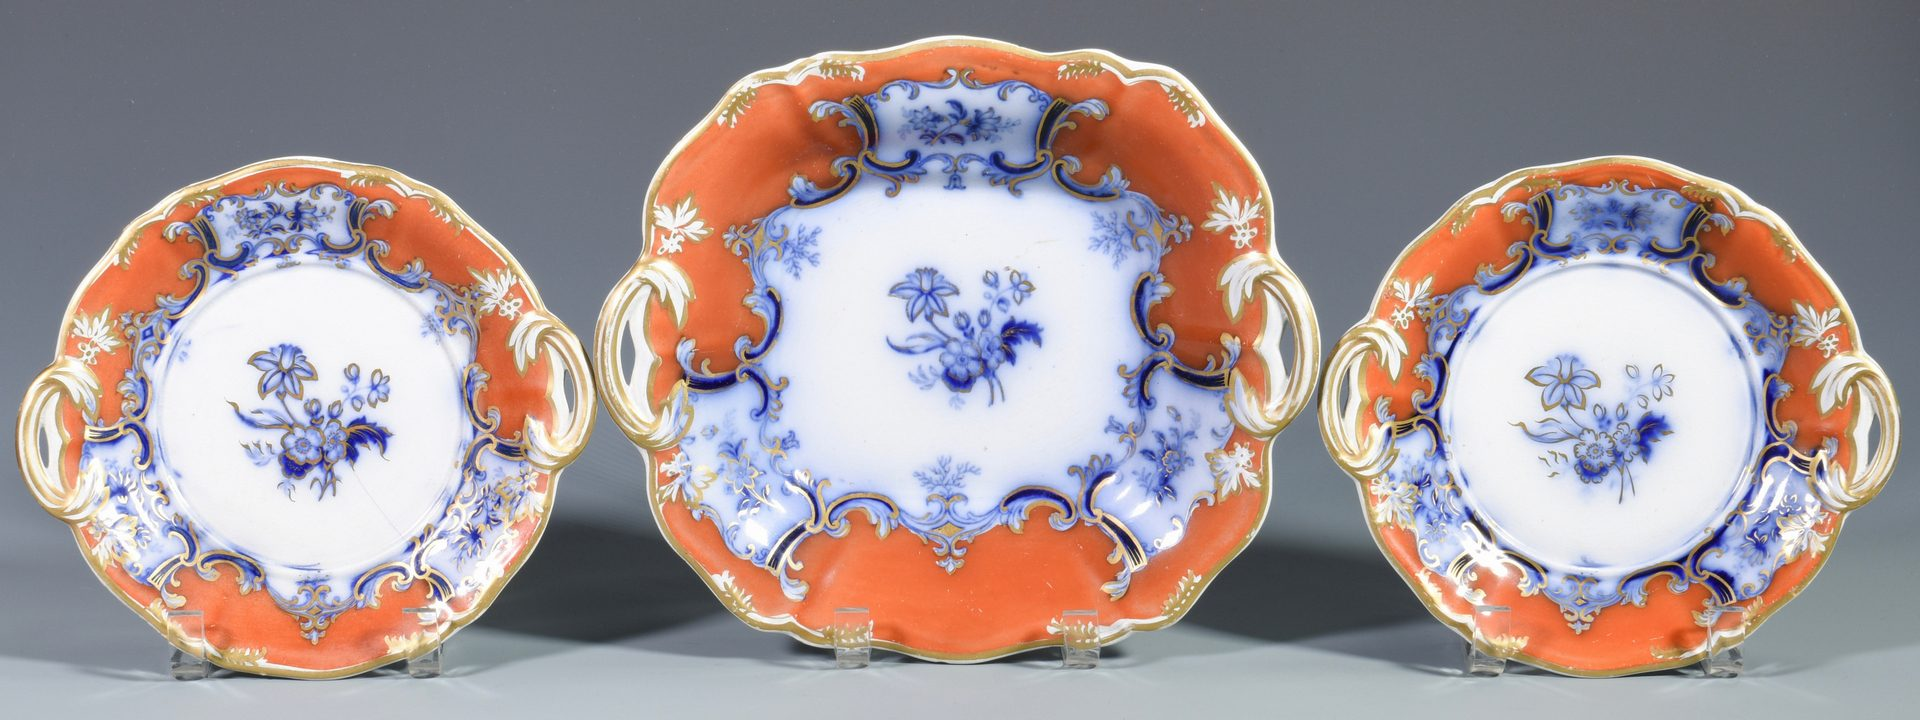 Lot 81: 8 Pcs. English Coalport Porcelain